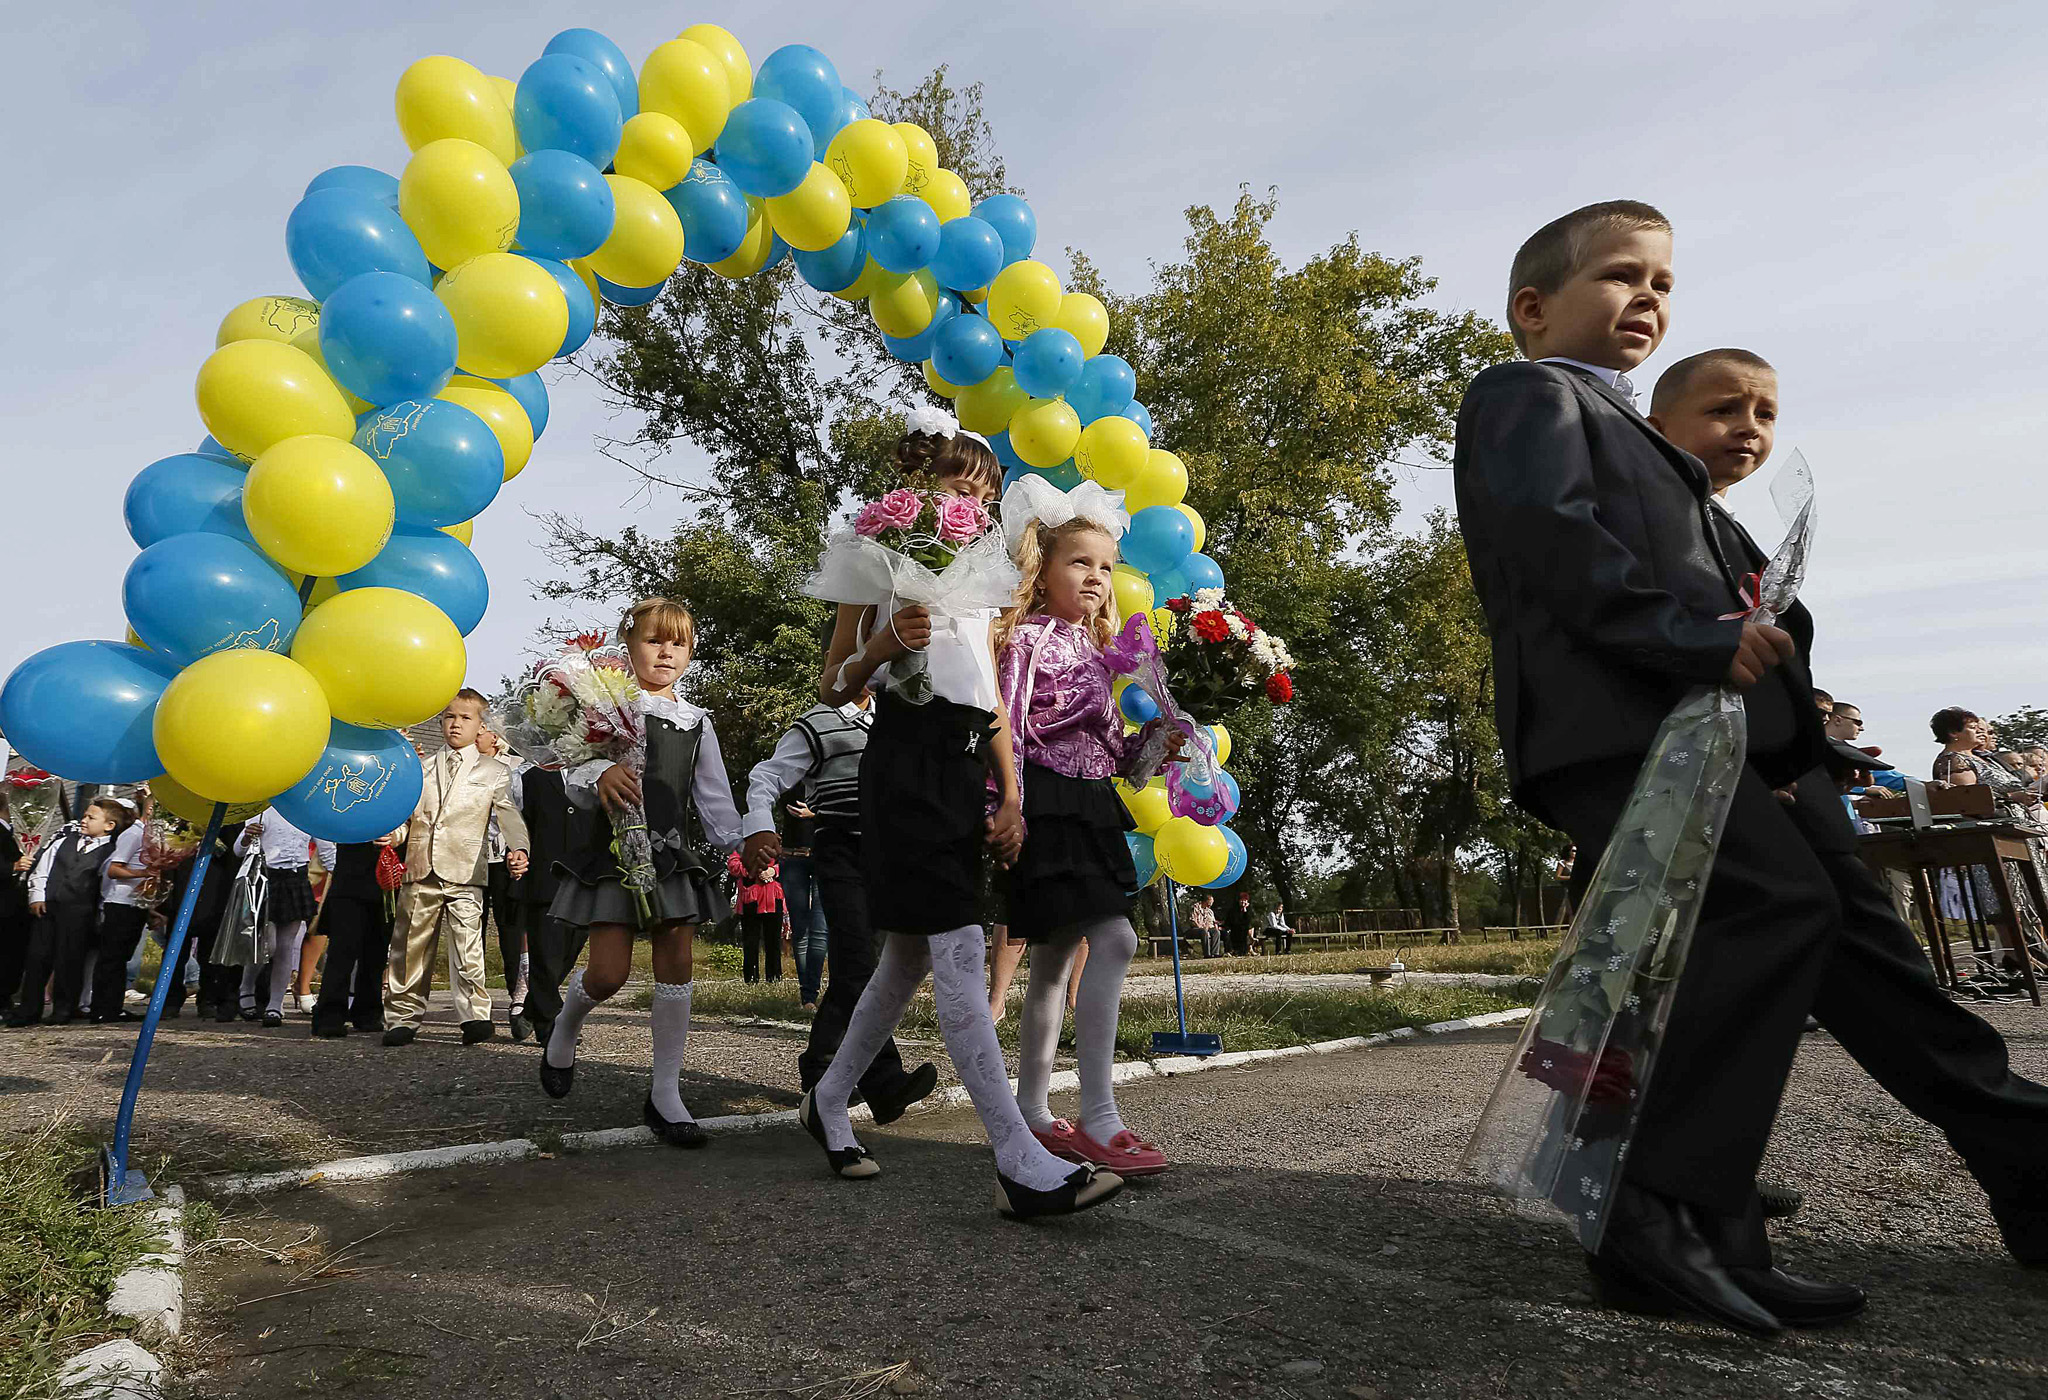 First graders take part in a festive ceremony to mark the start of another school year in Slaviansk...First graders take part in a festive ceremony to mark the start of another school year in Slaviansk, September 1, 2014. September 1 marks the start of a new academic year for students in Ukraine.   REUTERS/Gleb Garanich  (UKRAINE - Tags: EDUCATION SOCIETY)